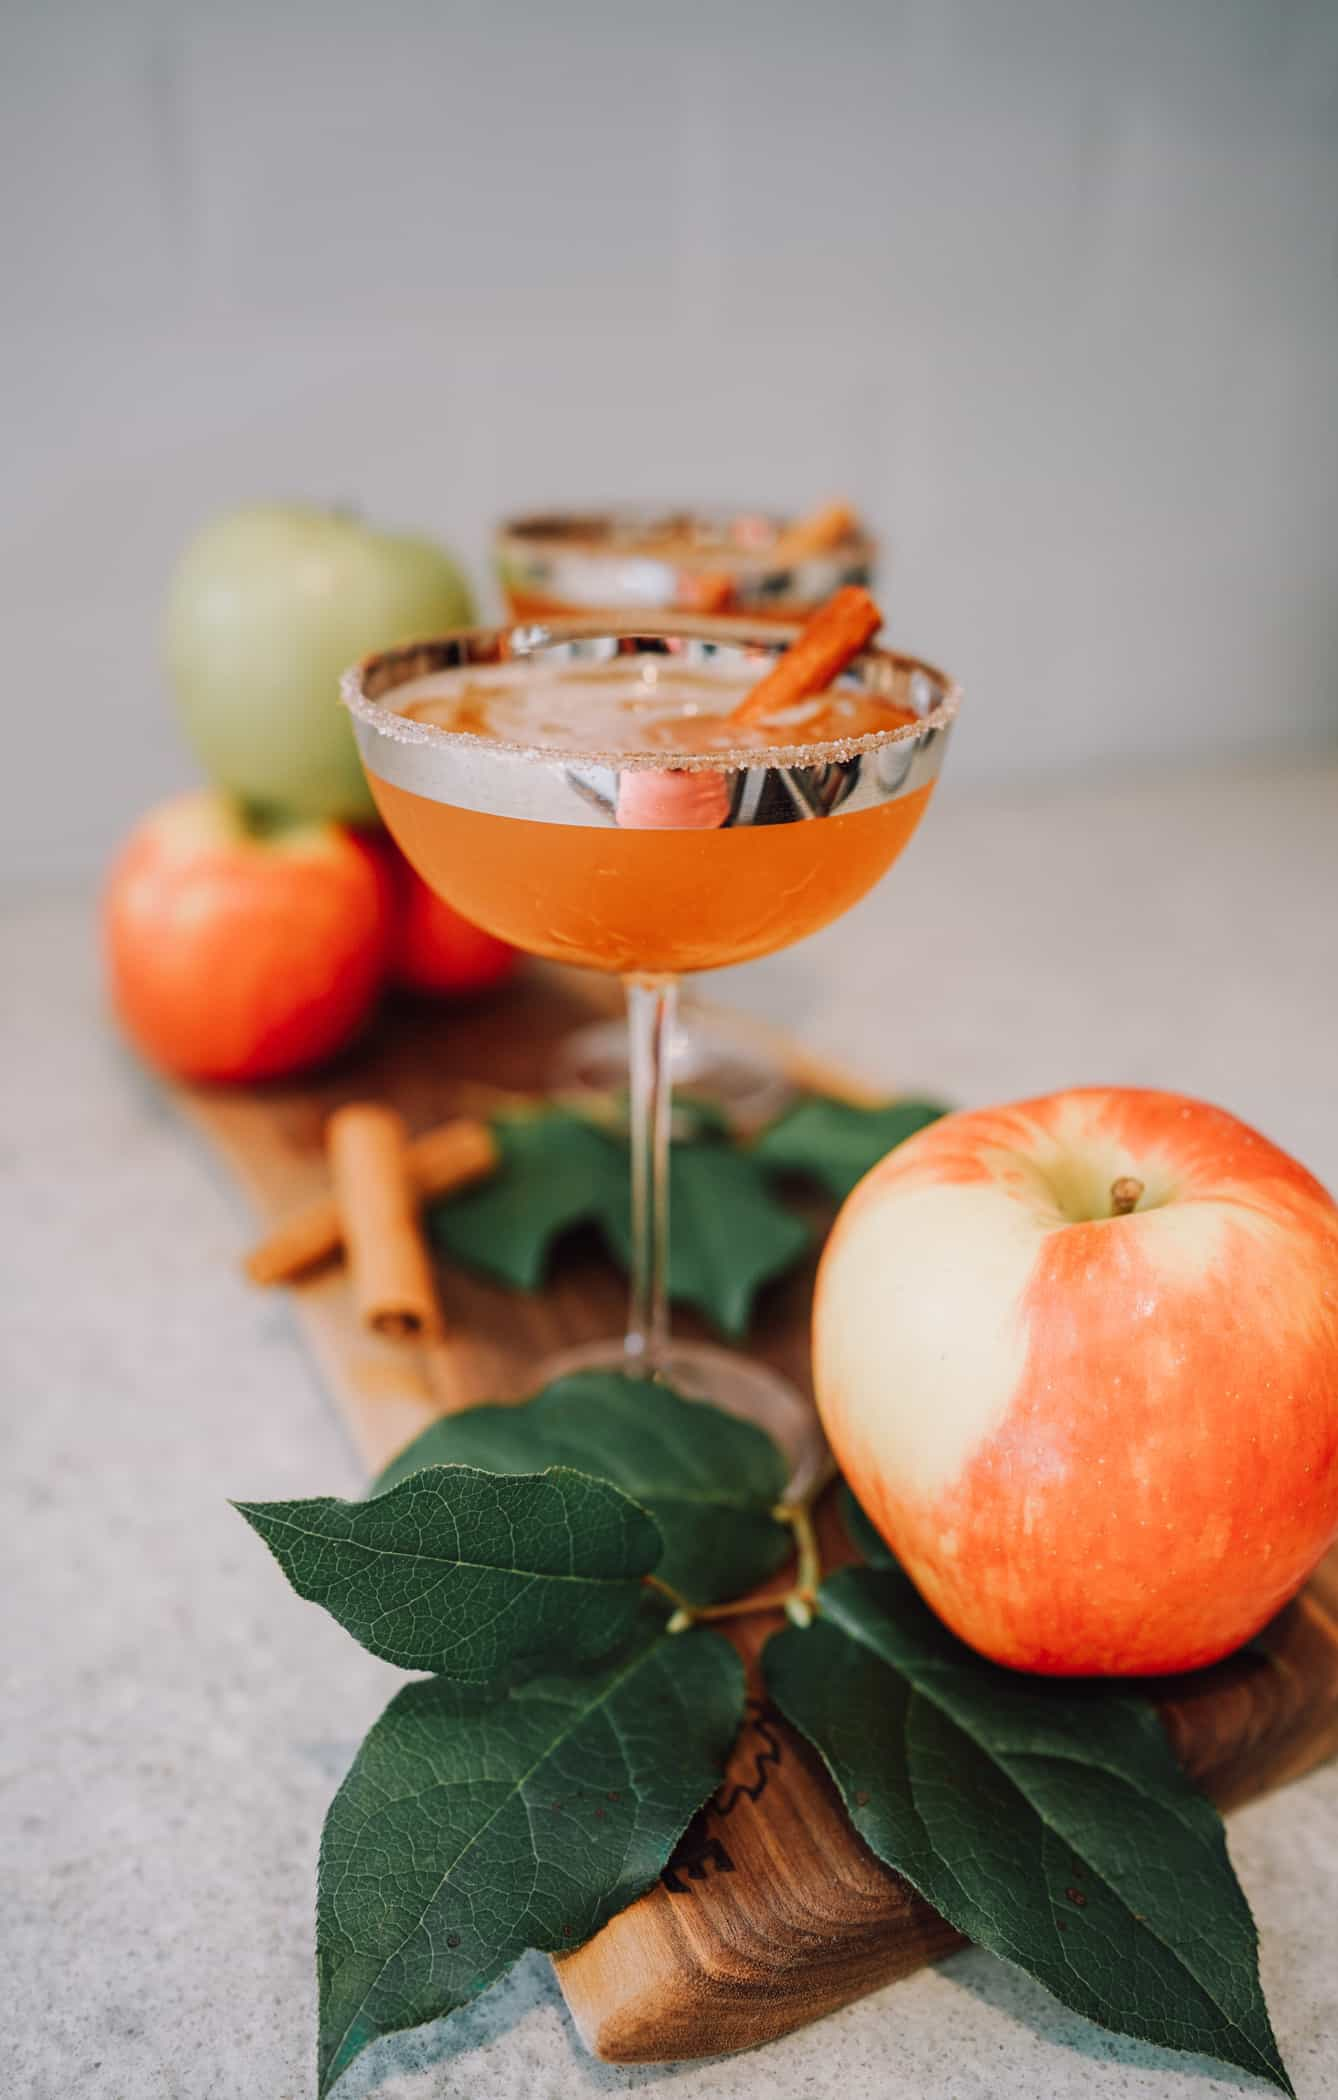 Looking for the perfect Fall apple cocktail recipe? This Apple Caramel Martini is an easy and delicious fall cocktail recipe. Made with apple cider and vodka it's the best martini recipe. Service this cocktail for Halloween and so much more! #fall #cocktail #martini #applemartini #caramel #recipe #caramelapple #halloween